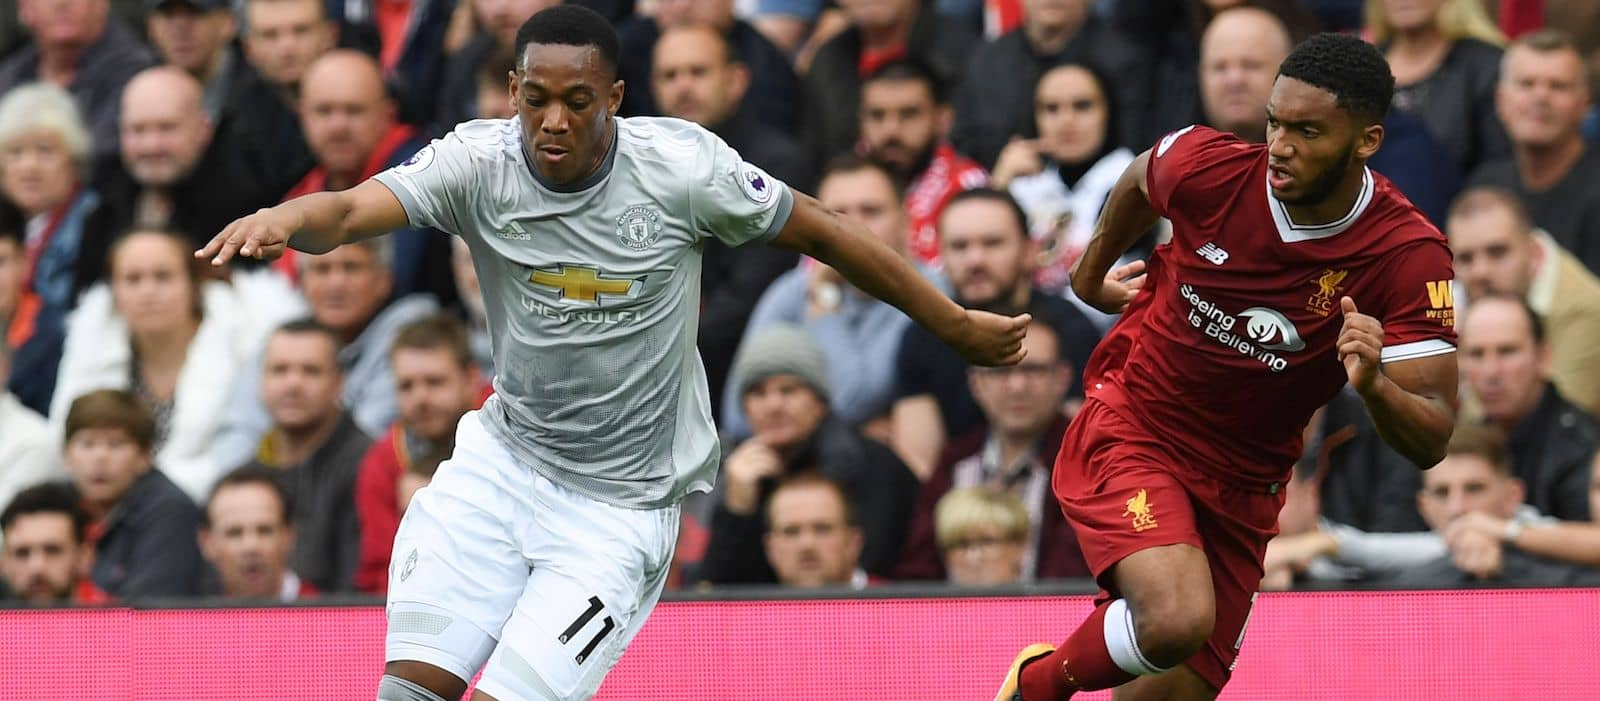 Barcelona send scouts to watch Anthony Martial in action against Benfica